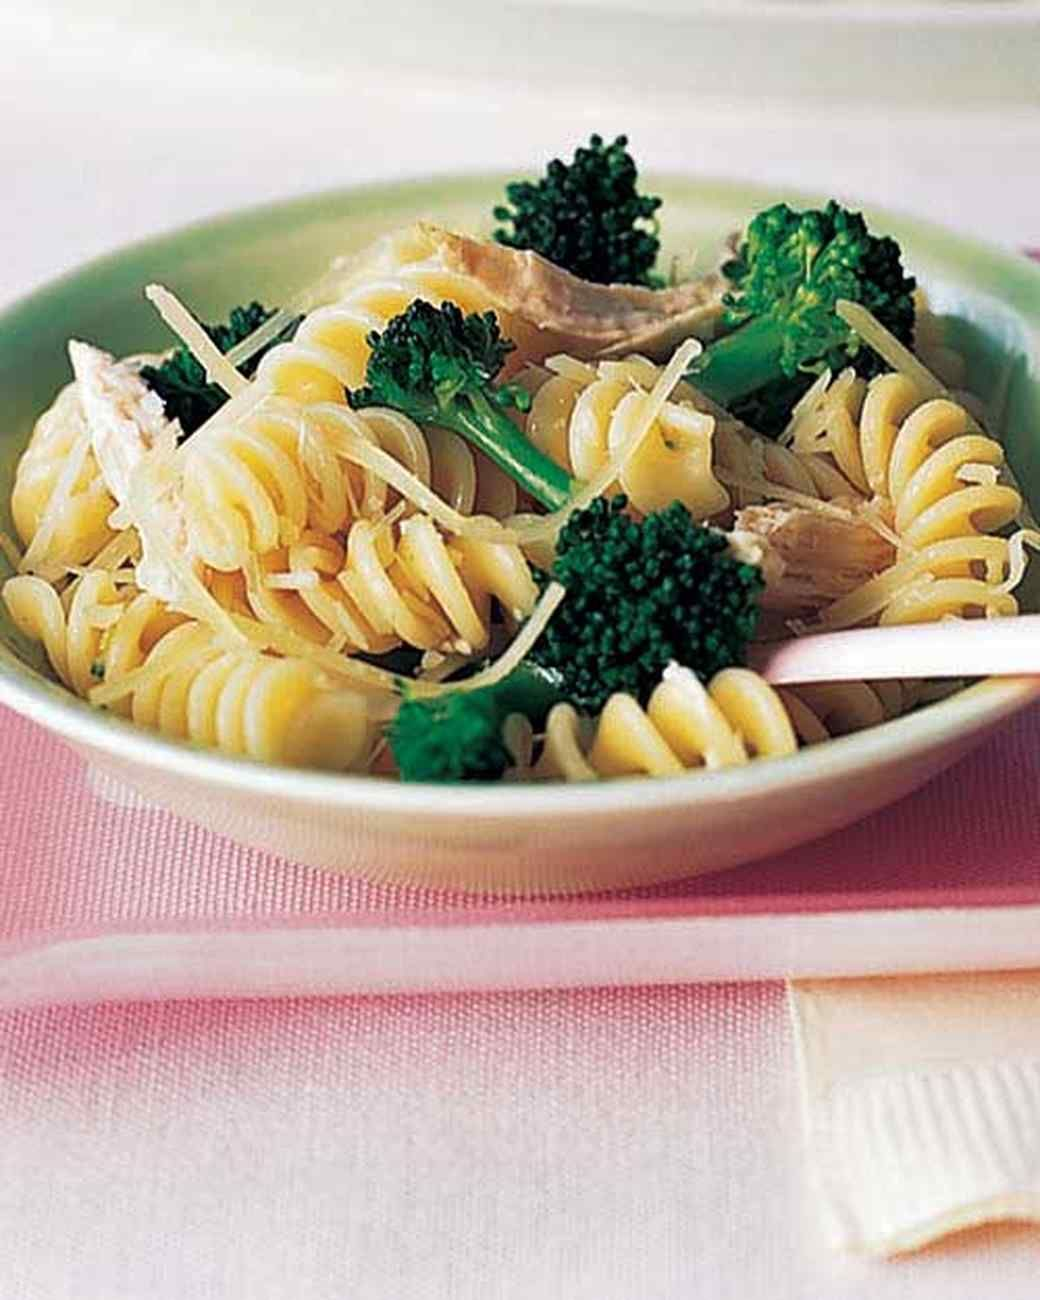 Fusilli with broccoli and chicken recipe broccoli chicken fusilli with broccoli and chicken broccoli chickenmartha stewart recipesfood groupsdelicious forumfinder Image collections